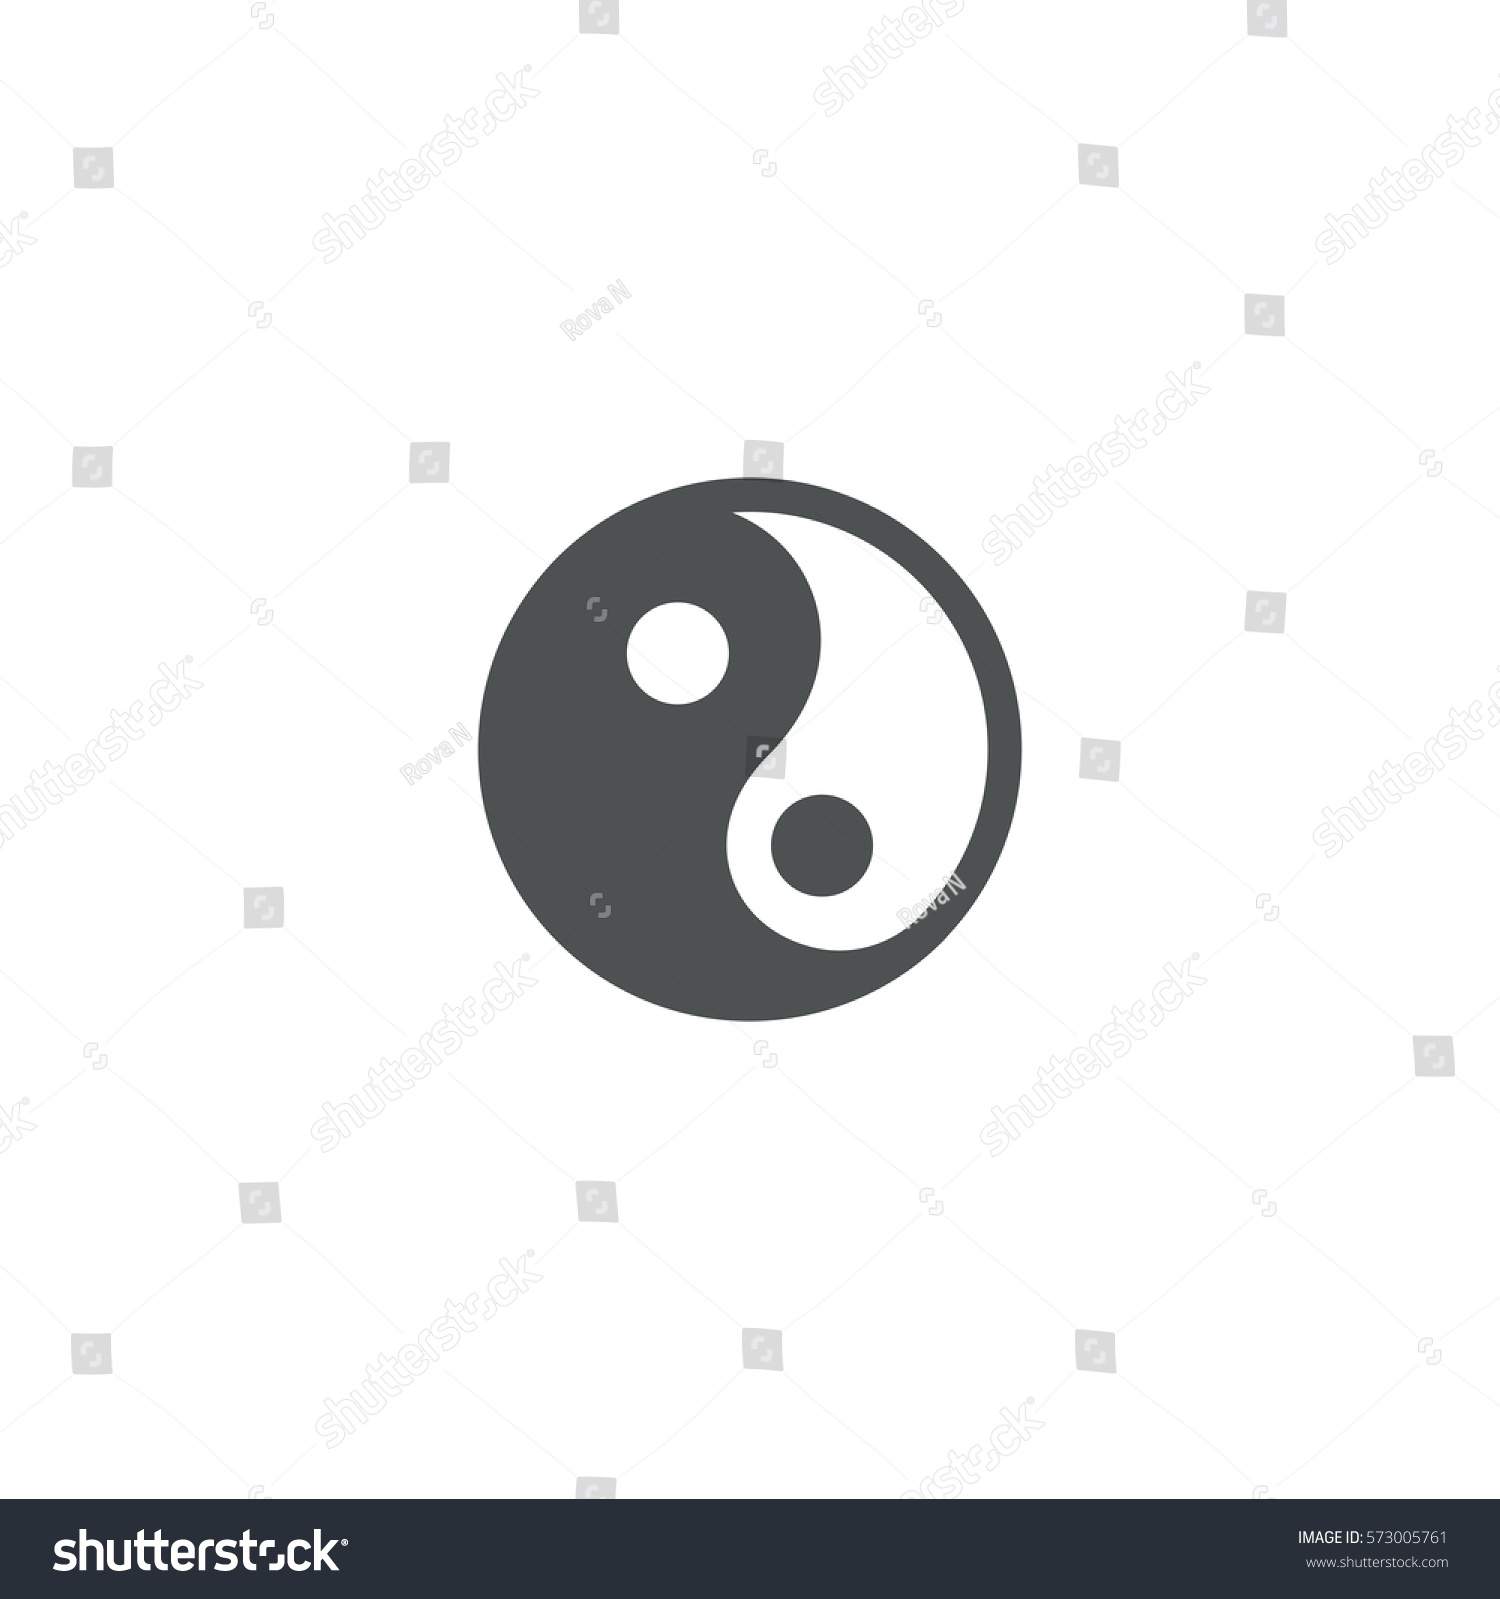 Yin yang icon sign design stock vector 573005761 for Architecture yin yang